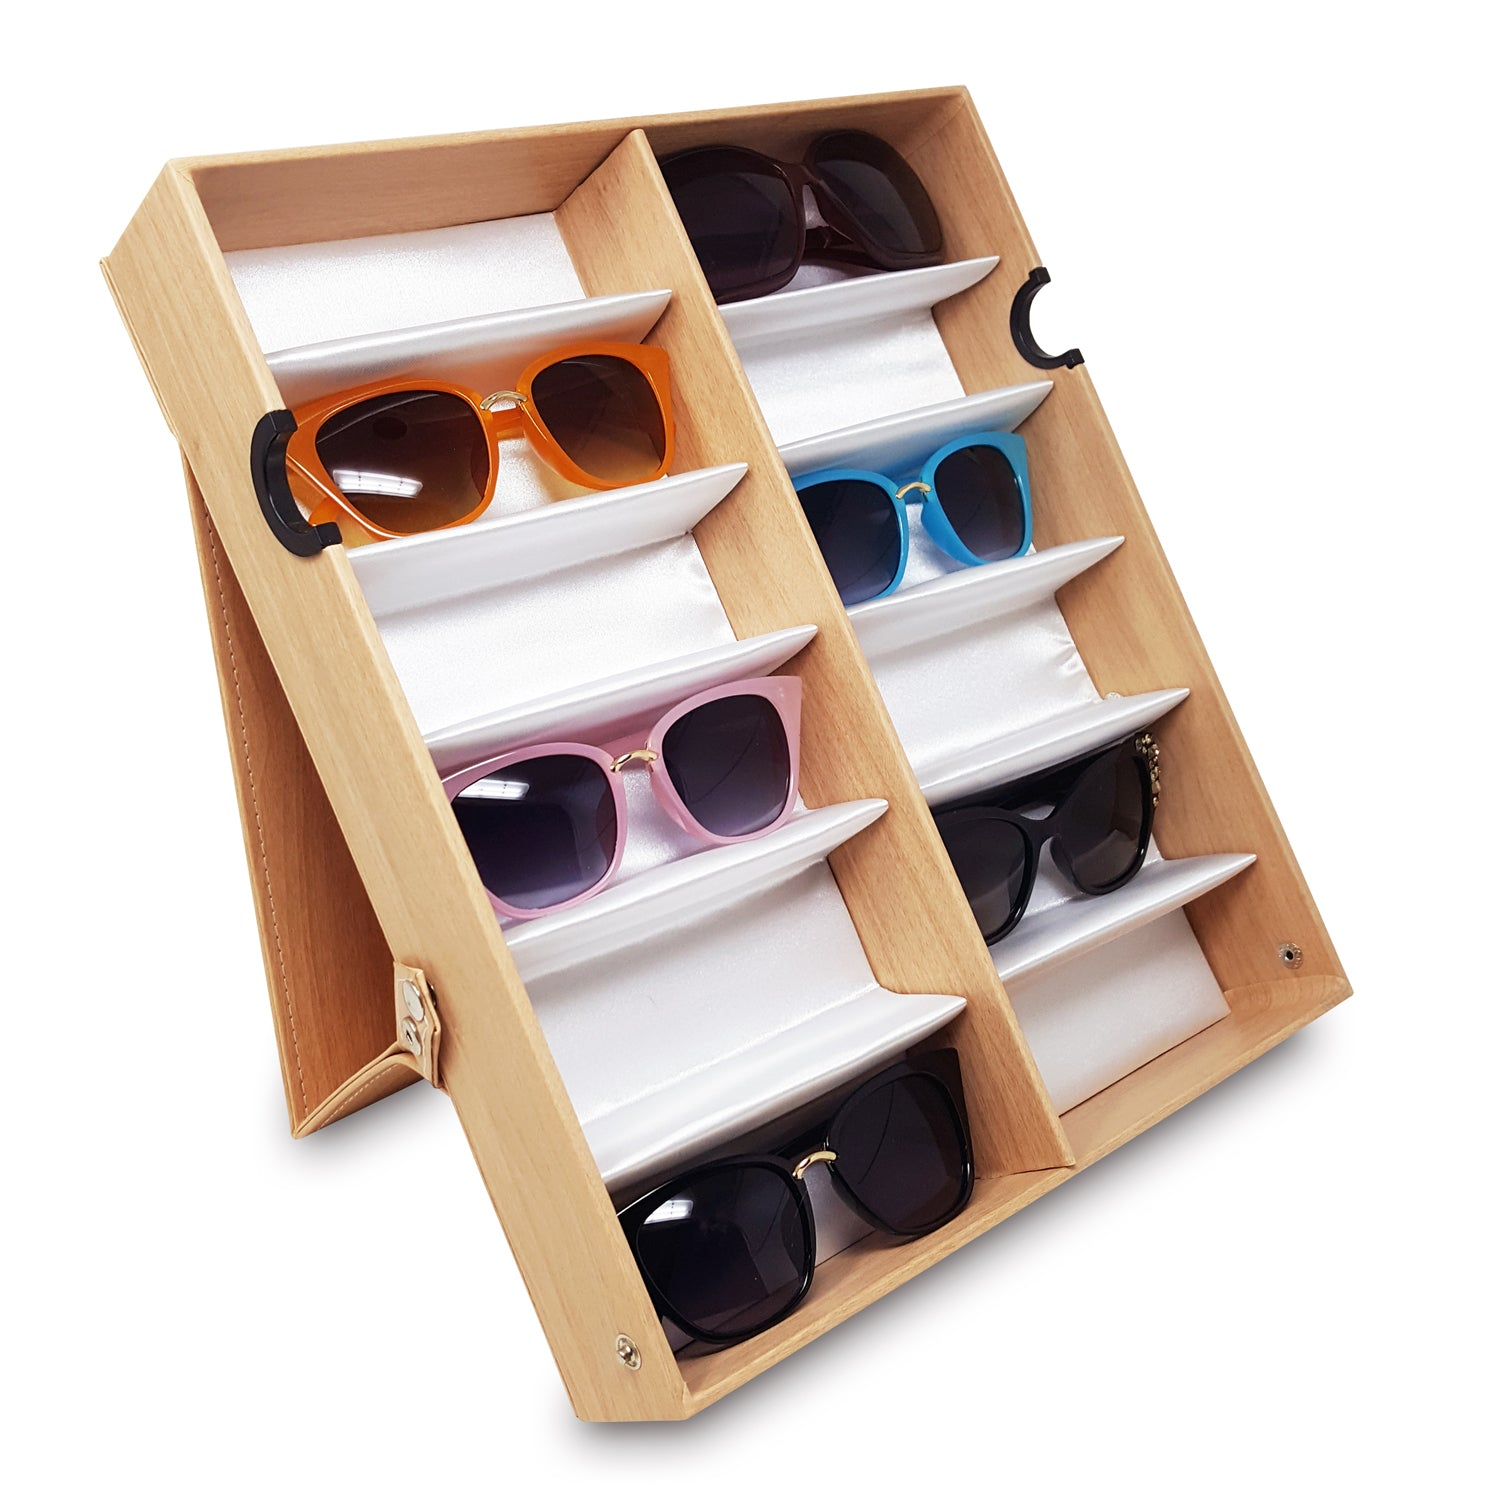 #TR-34VFL-WDOK Eyewear Storage Organizer Box -12 Slots Sunglasses Box Display